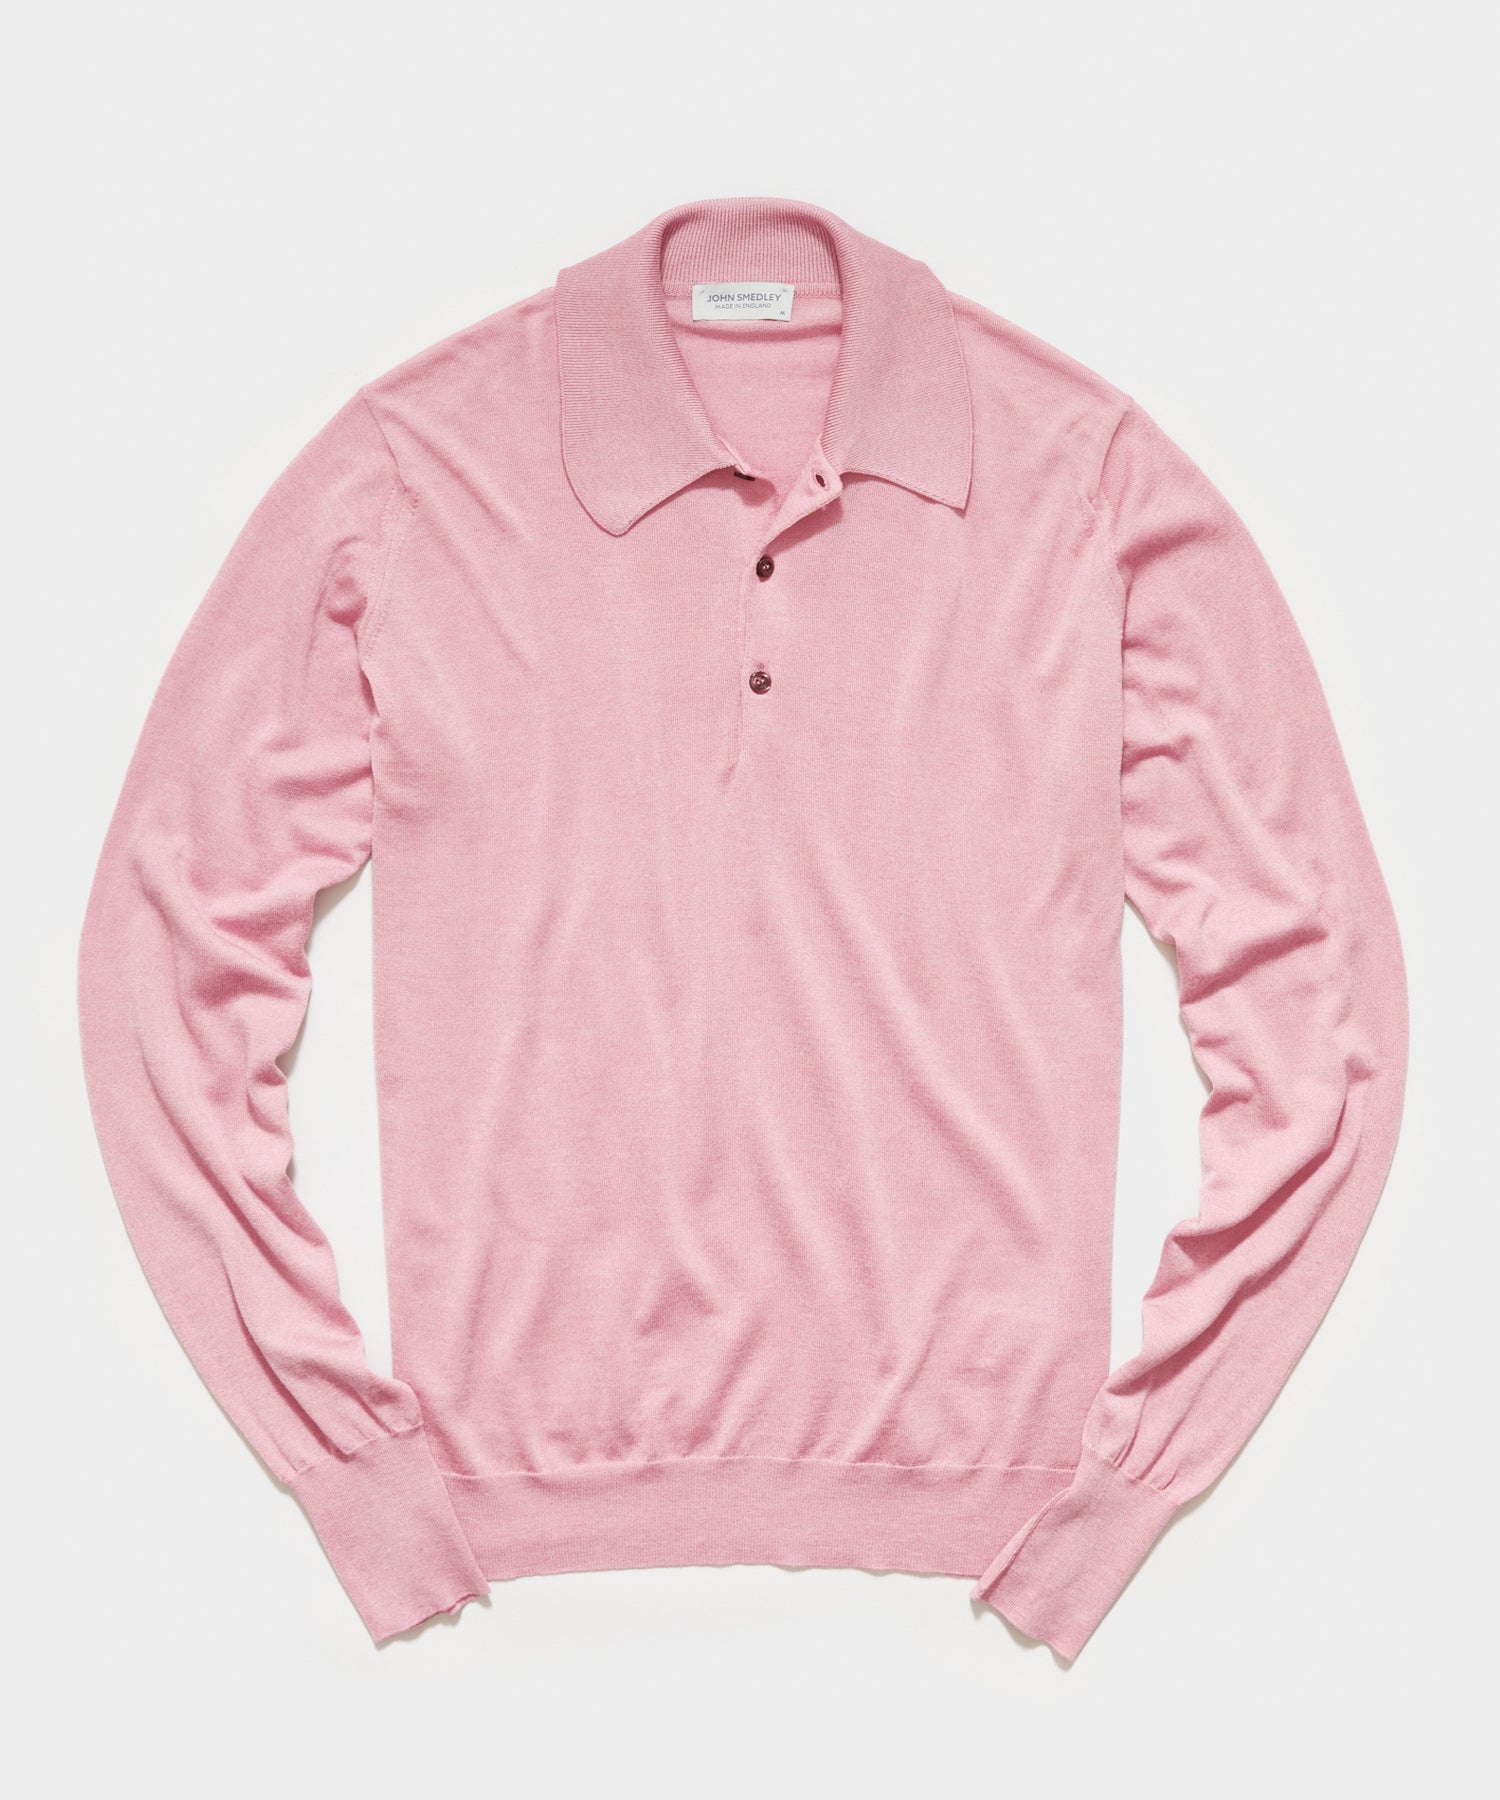 John Smedley Long Sleeve Easy Fit Merino Polo in Rose